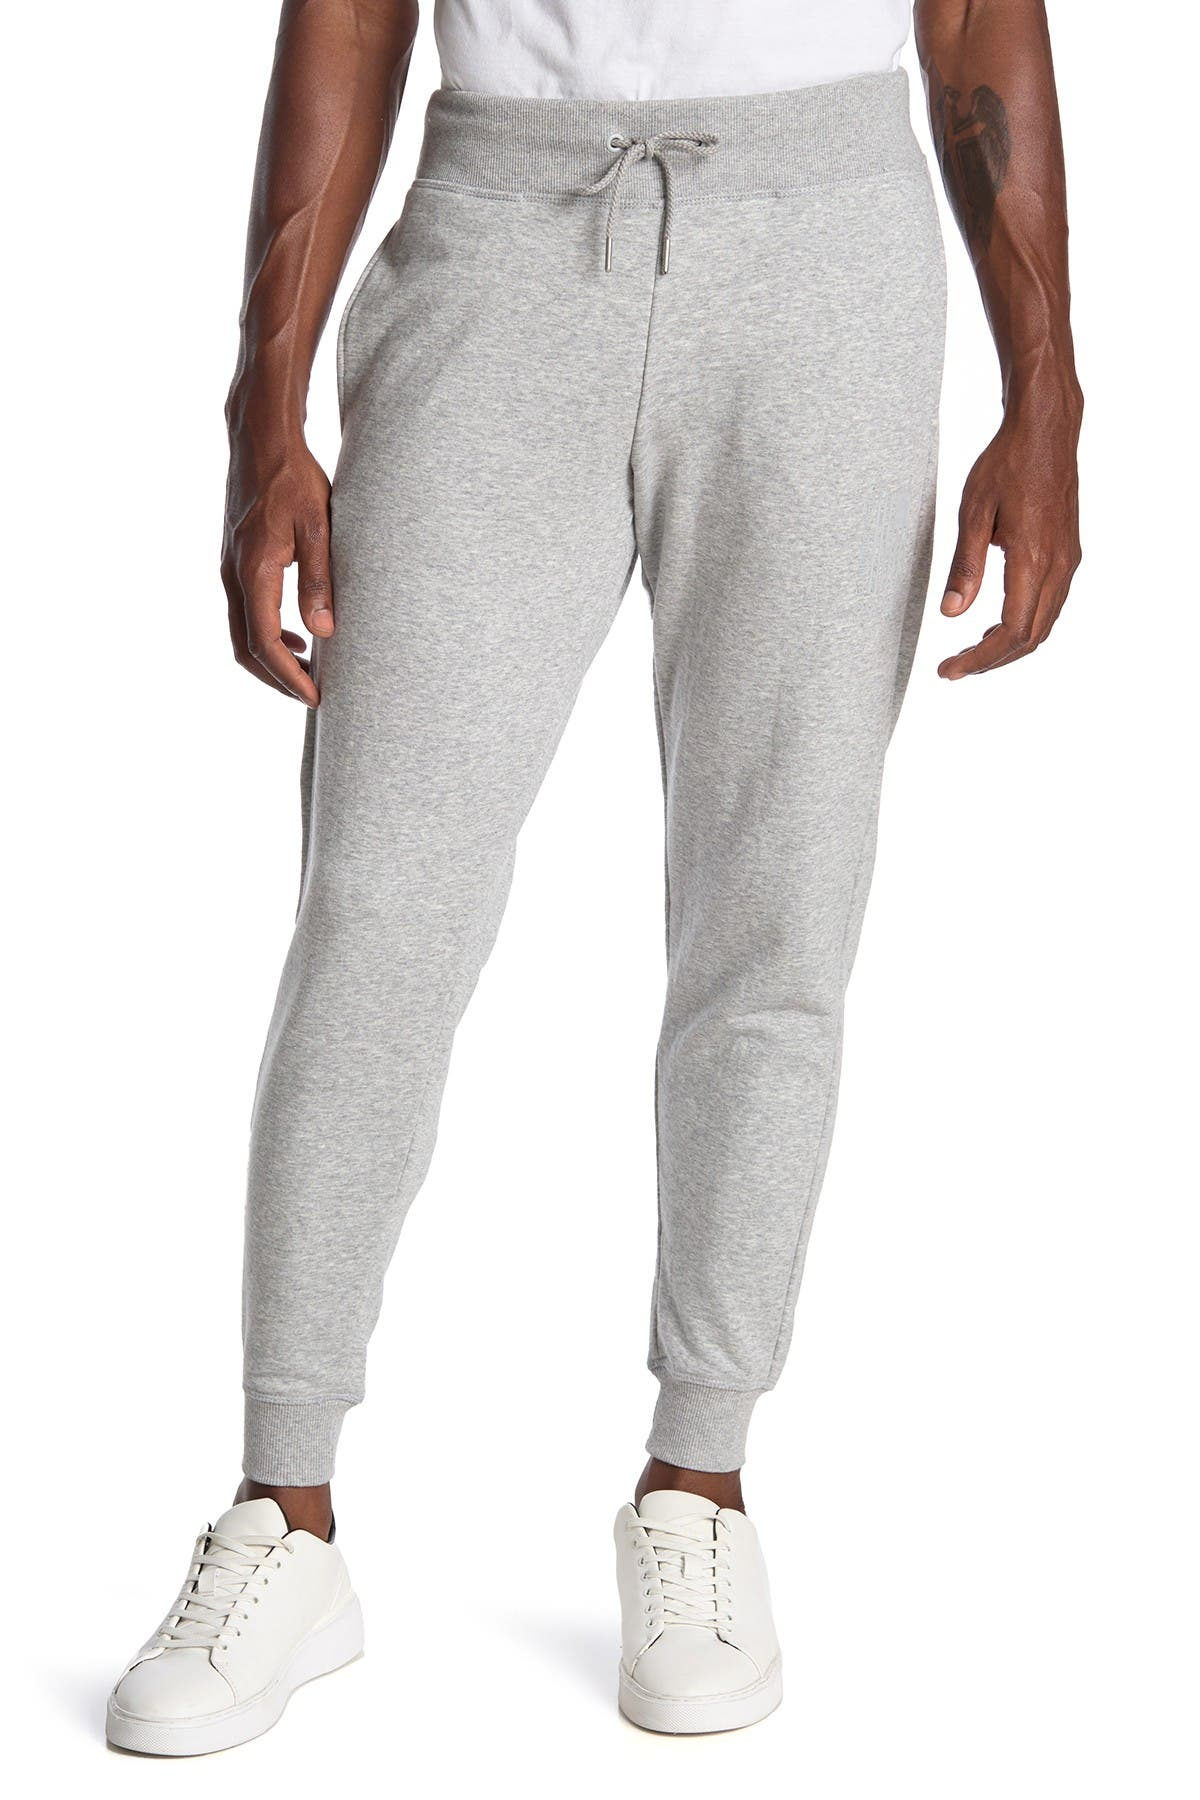 Image of New Balance Drawstring Jogger Sweatpants